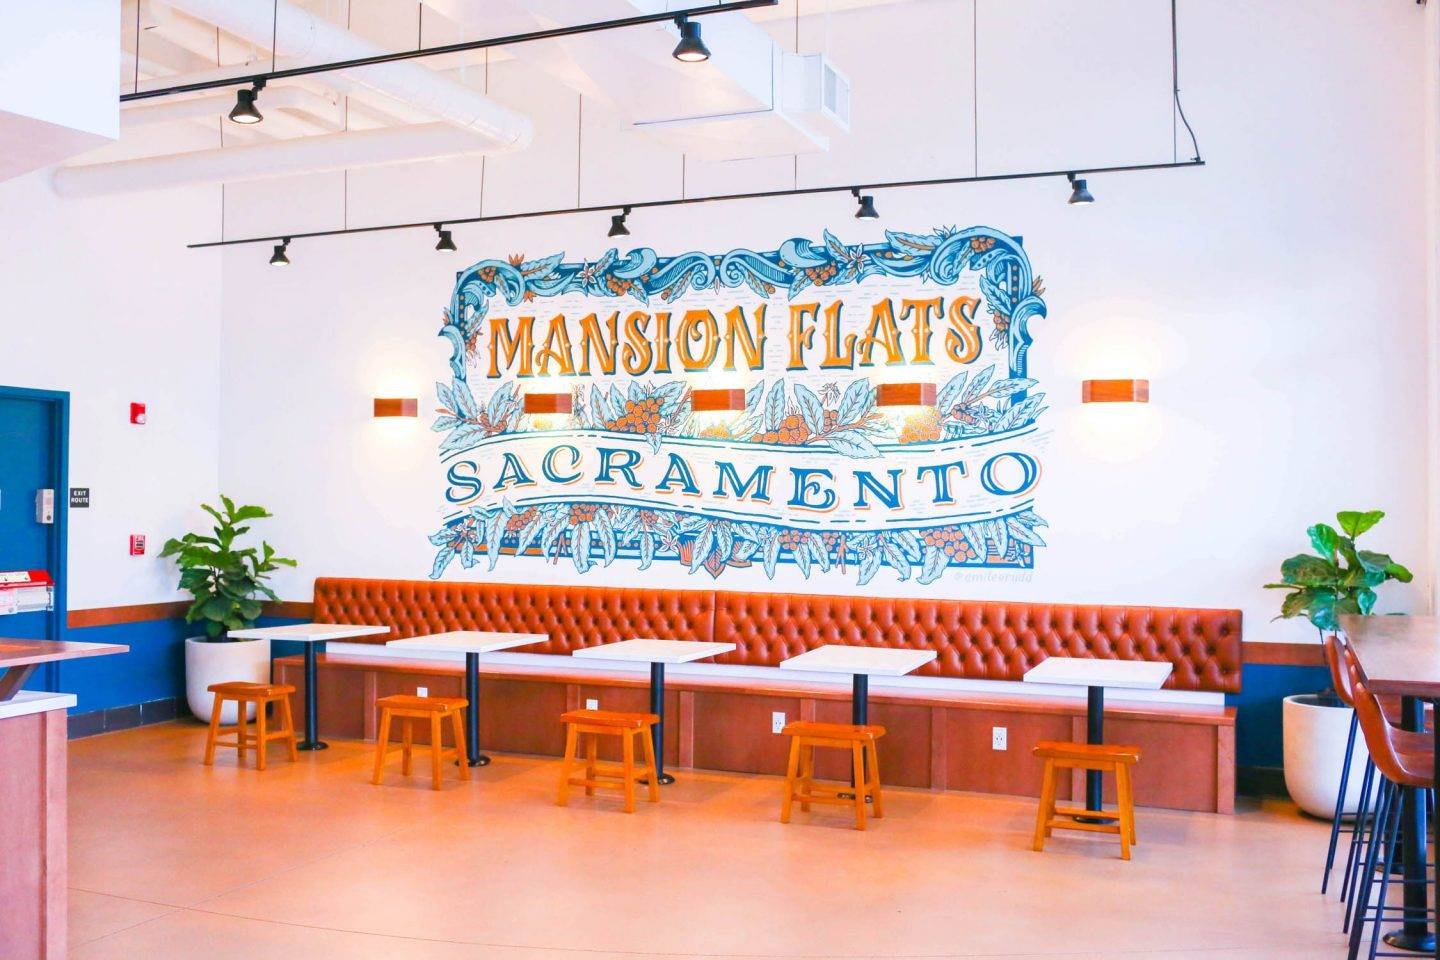 Looking for the most instagrammable places in Sacramento? Well, look no further- we've pulled together the list of all the cute and instagrammable coffee shops, and wall art, and cute ice cream parlors so you can snap away!